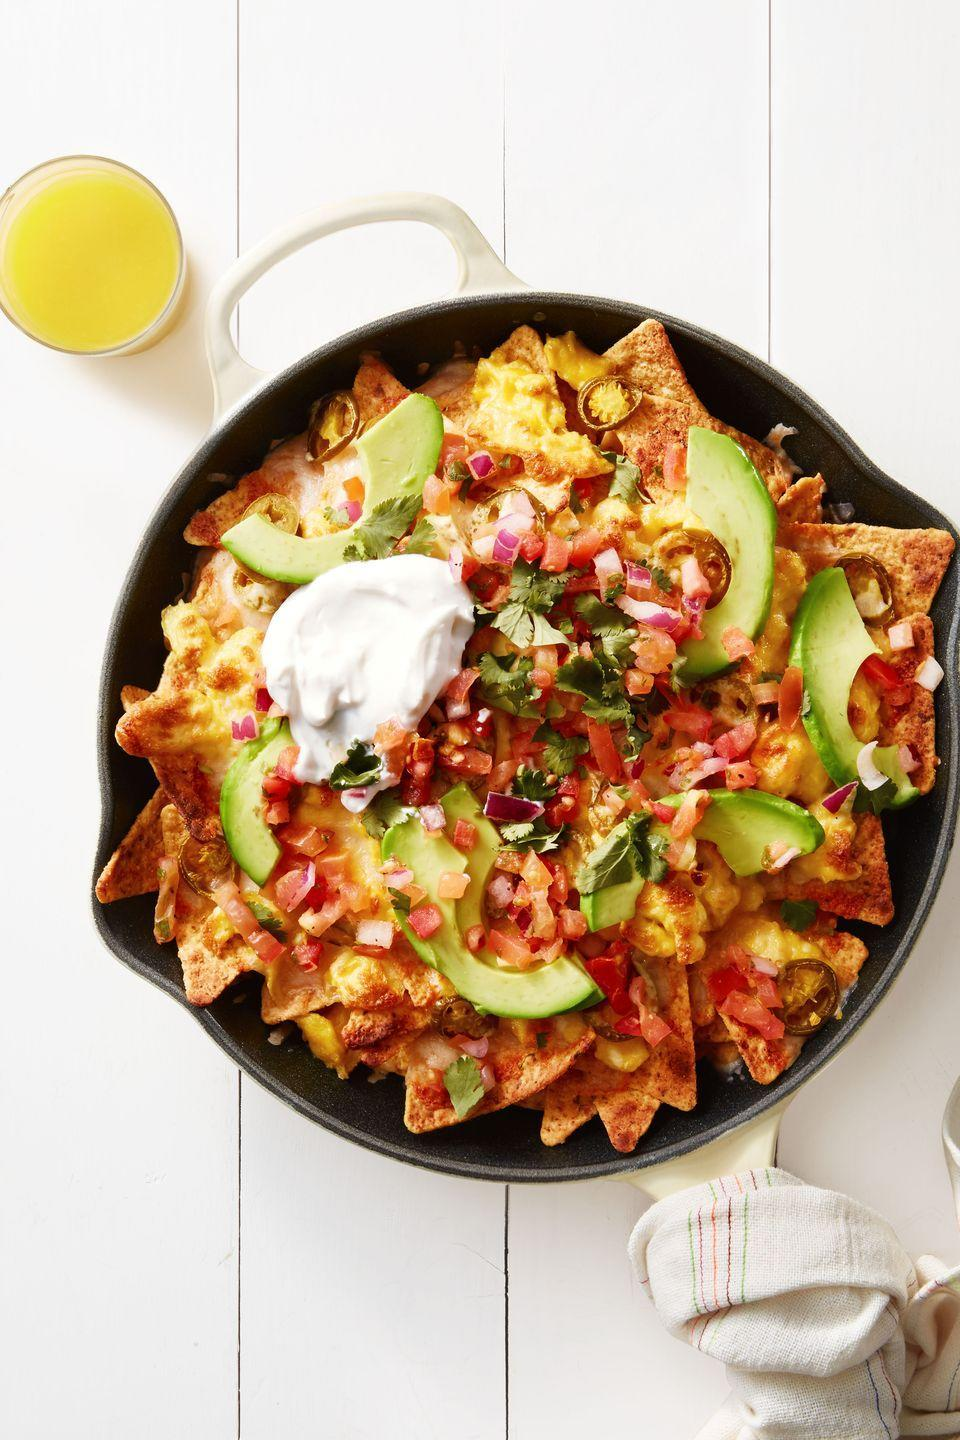 "<p>With eggs, cheese, jalapeños, avocado, and pico de gallo, these chilaquiles are basically nachos disguised as breakfast.</p><p><em><a href=""https://www.goodhousekeeping.com/food-recipes/a39354/mexican-breakfast-chilaquiles-recipe/"" rel=""nofollow noopener"" target=""_blank"" data-ylk=""slk:Get the recipe for Mexican Breakfast Chilaquiles »"" class=""link rapid-noclick-resp"">Get the recipe for Mexican Breakfast Chilaquiles » </a></em><br></p>"